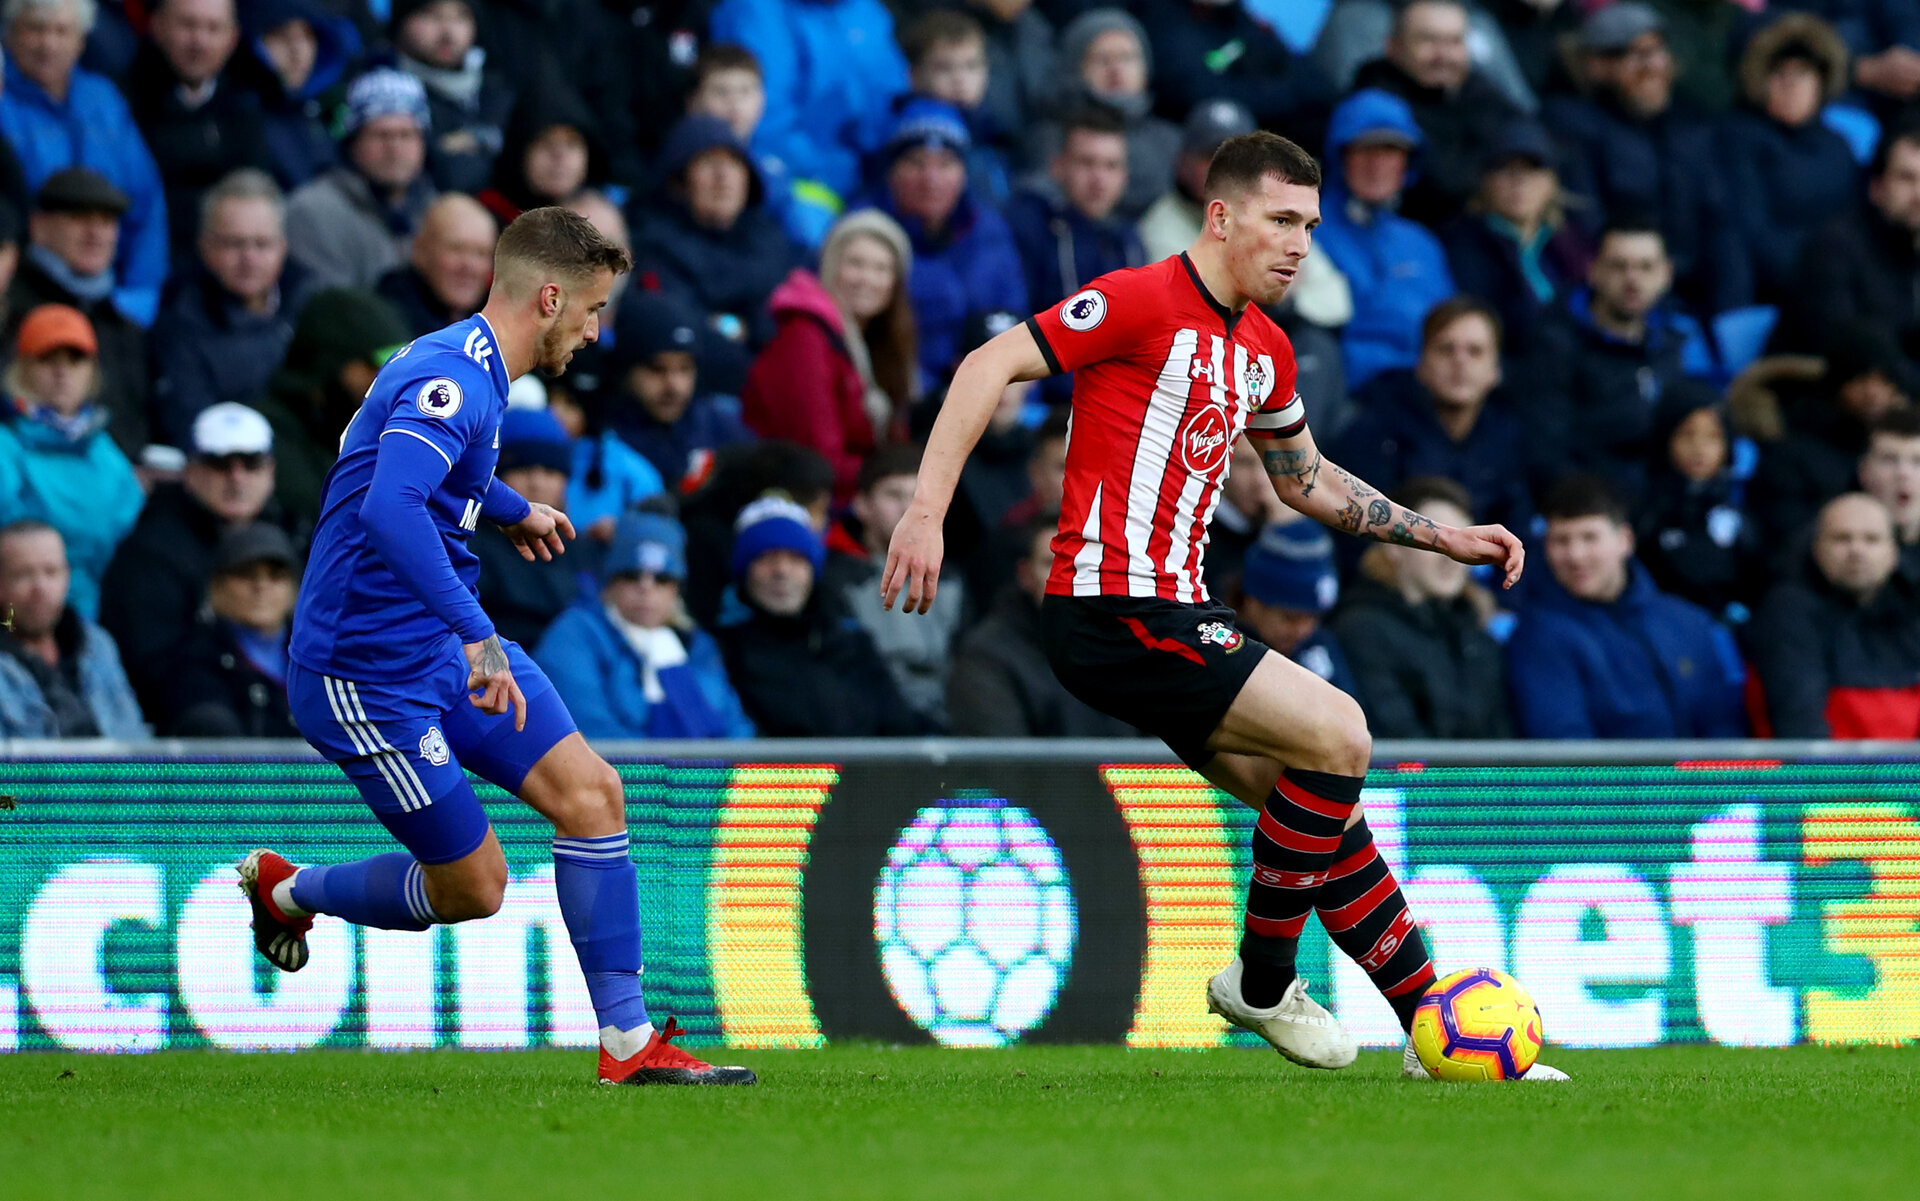 CARDIFF, WALES - DECEMBER 08: Pierre-Emile Hojbjerg of Southampton during the Premier League match between Cardiff City and Southampton FC at Cardiff City Stadium on December 8, 2018 in Cardiff, United Kingdom. (Photo by Matt Watson/Southampton FC via Getty Images)